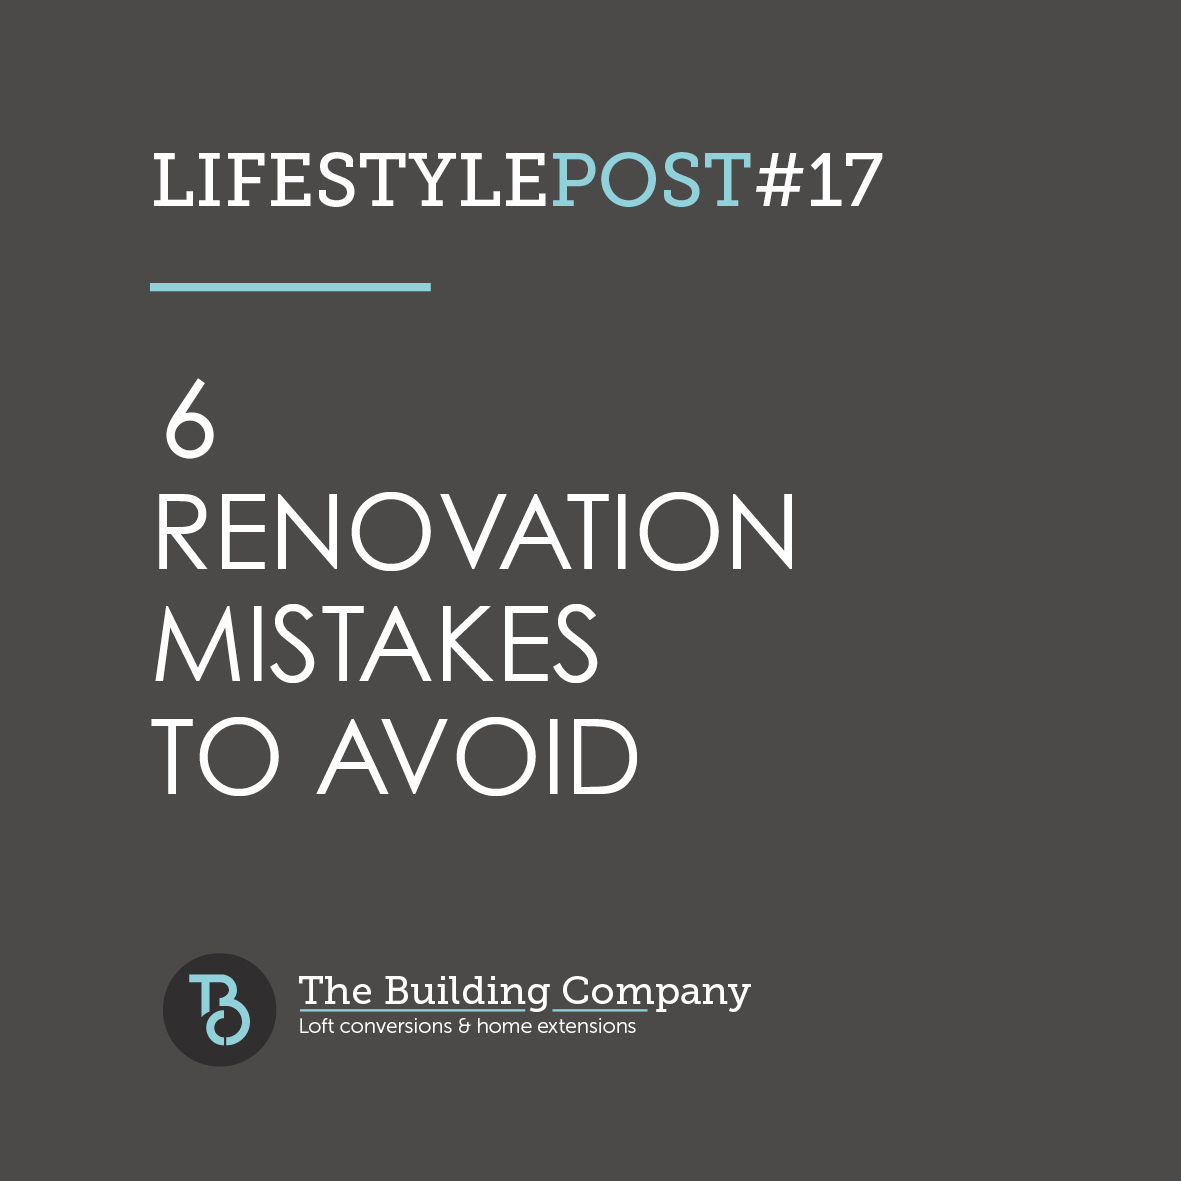 6 mistakes to avoid when renovating your home